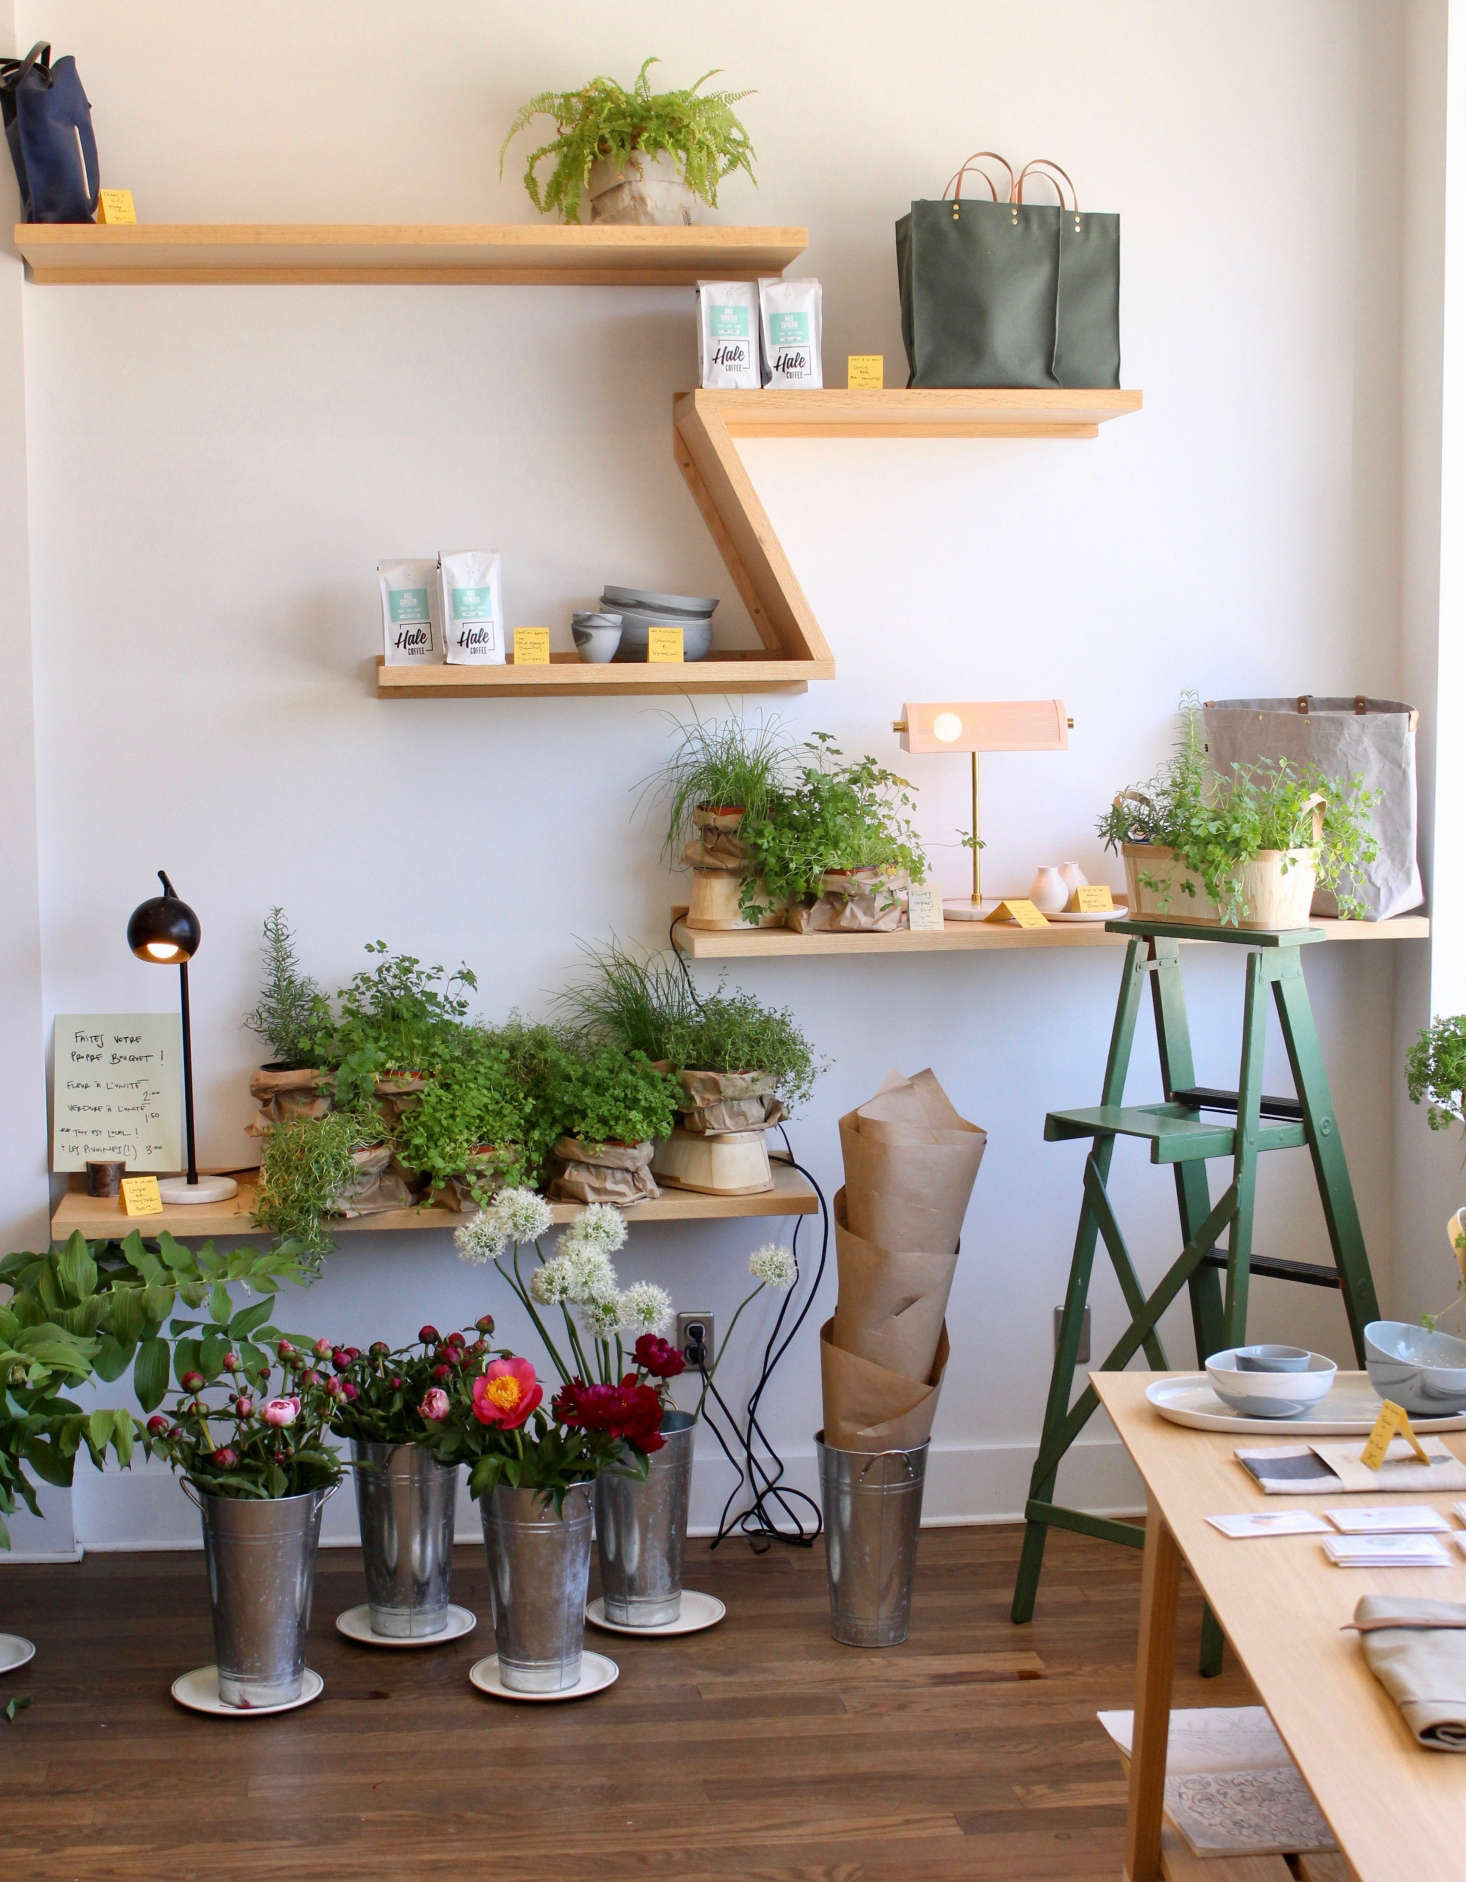 Flowersand herbs from On Origine are featured in the boutique.